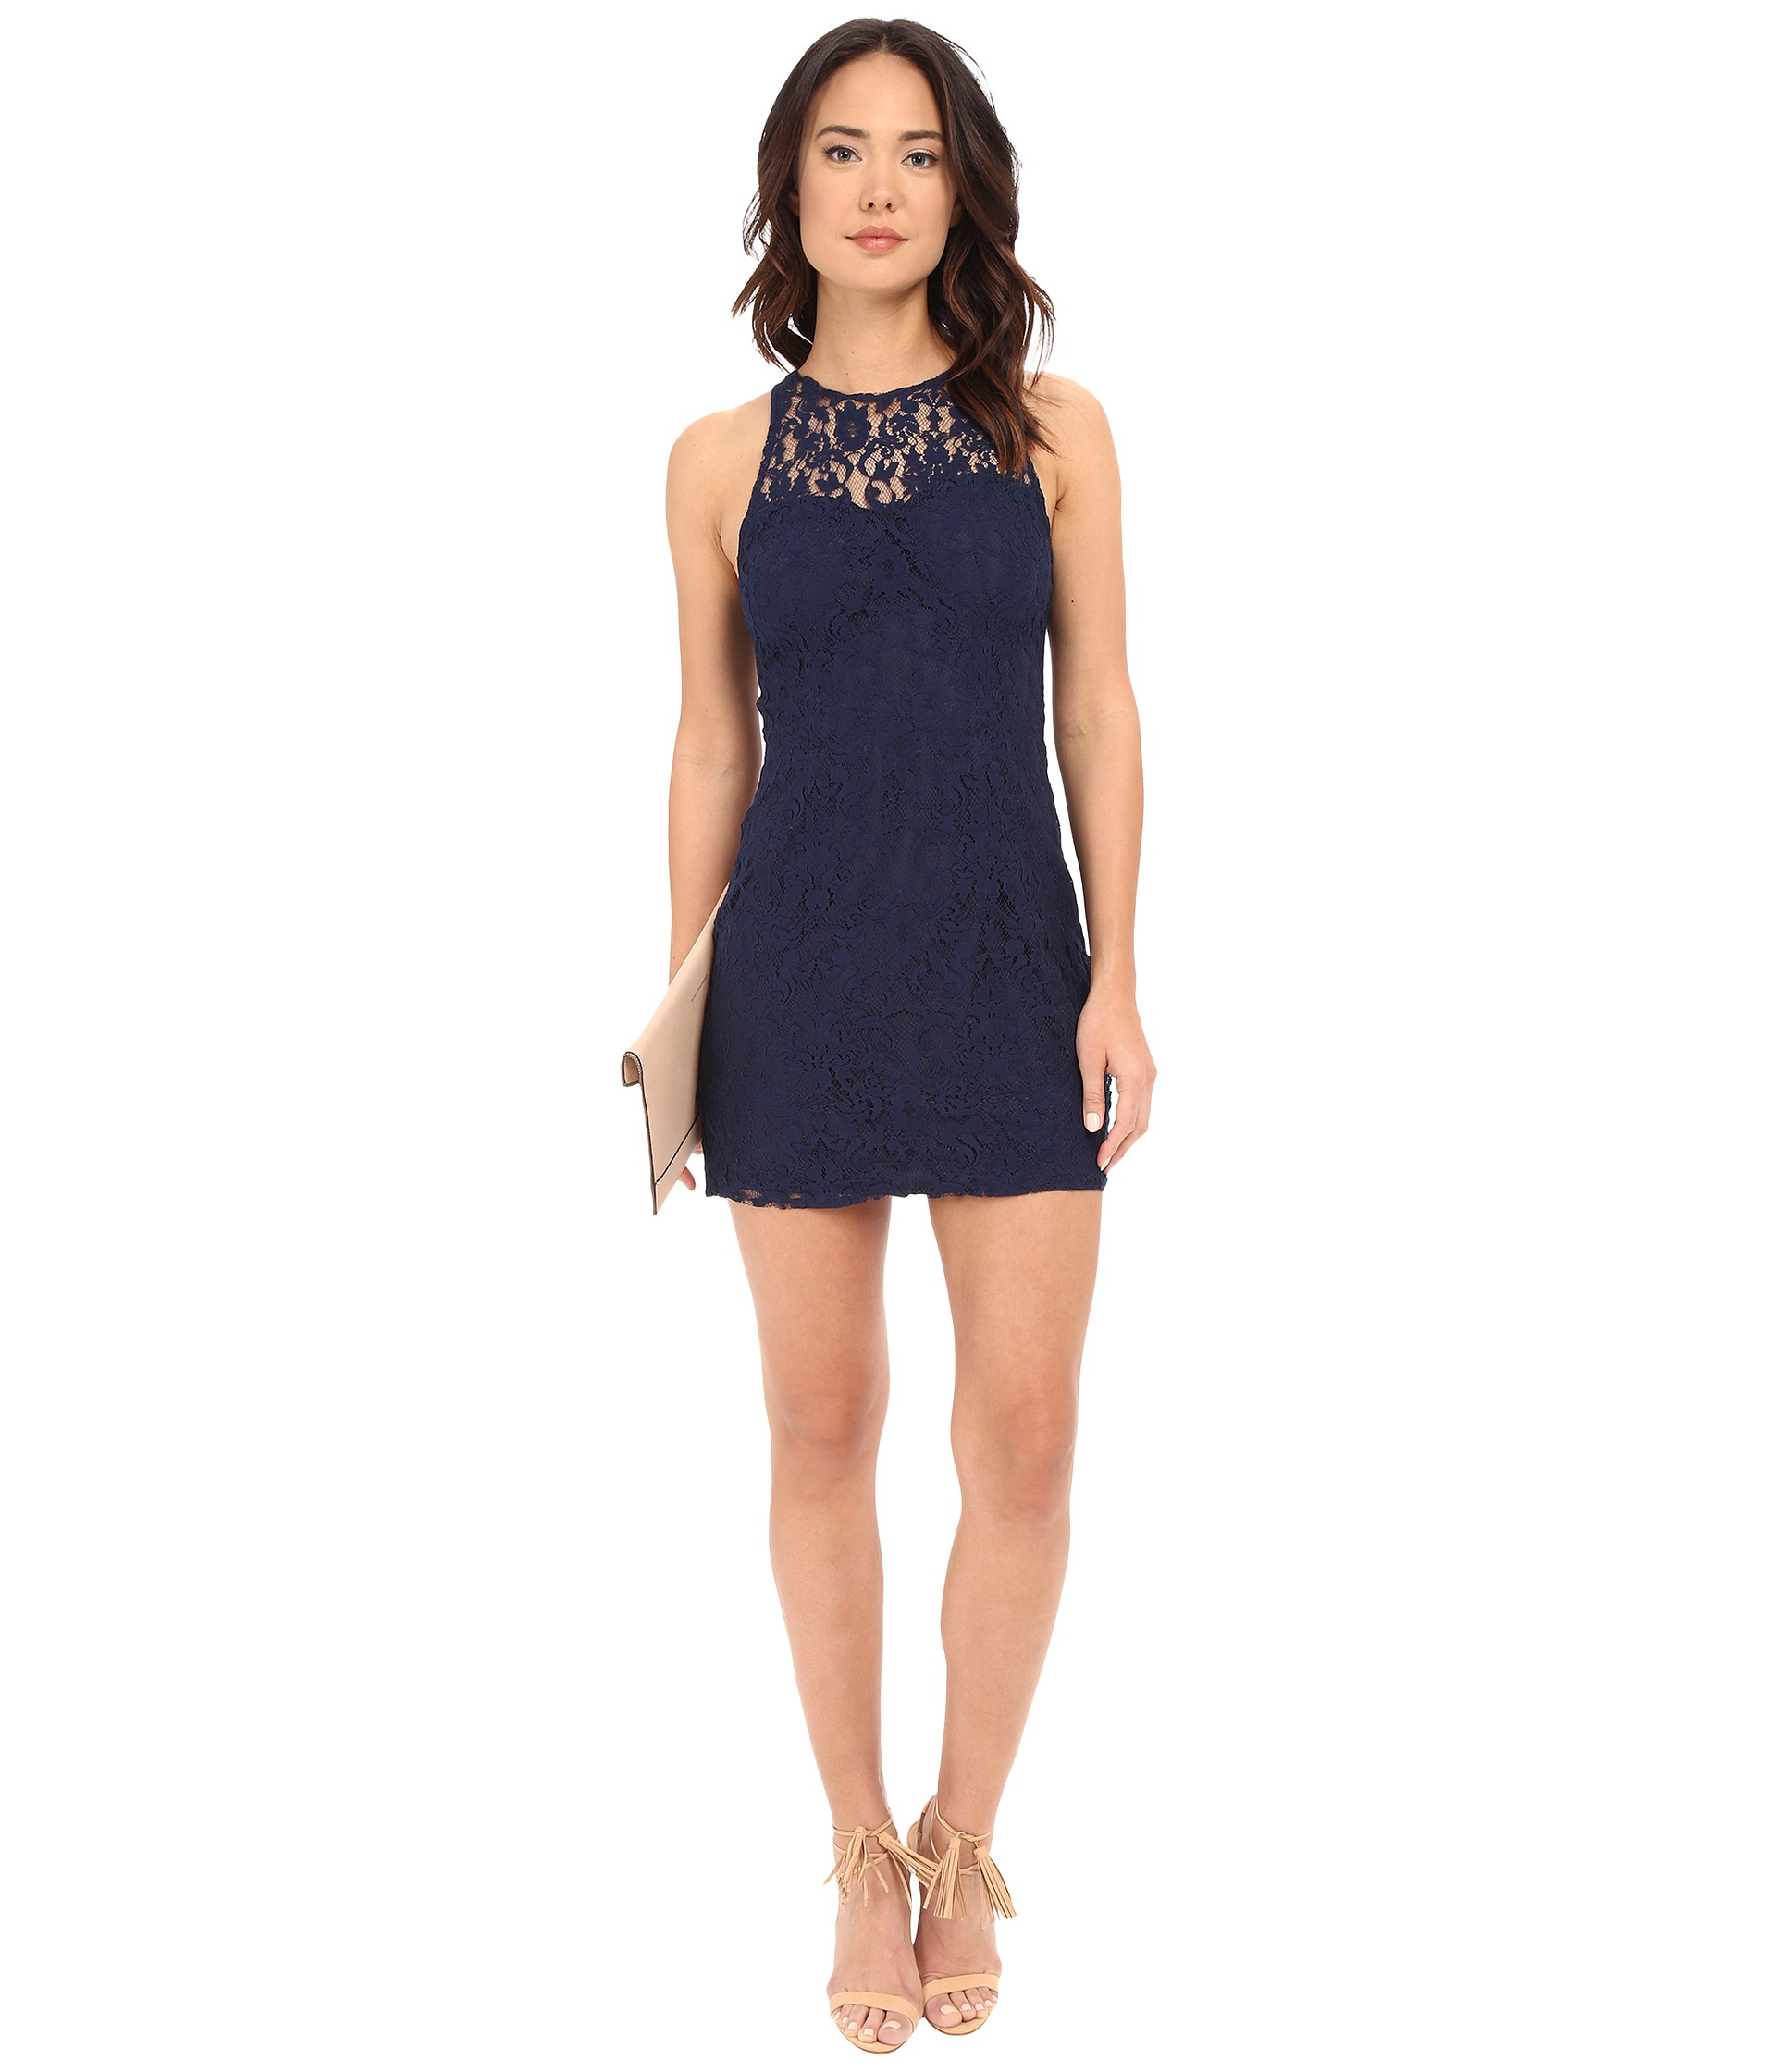 Bb dakota Larelle Sleeveless Lace Dress in Blue | Lyst